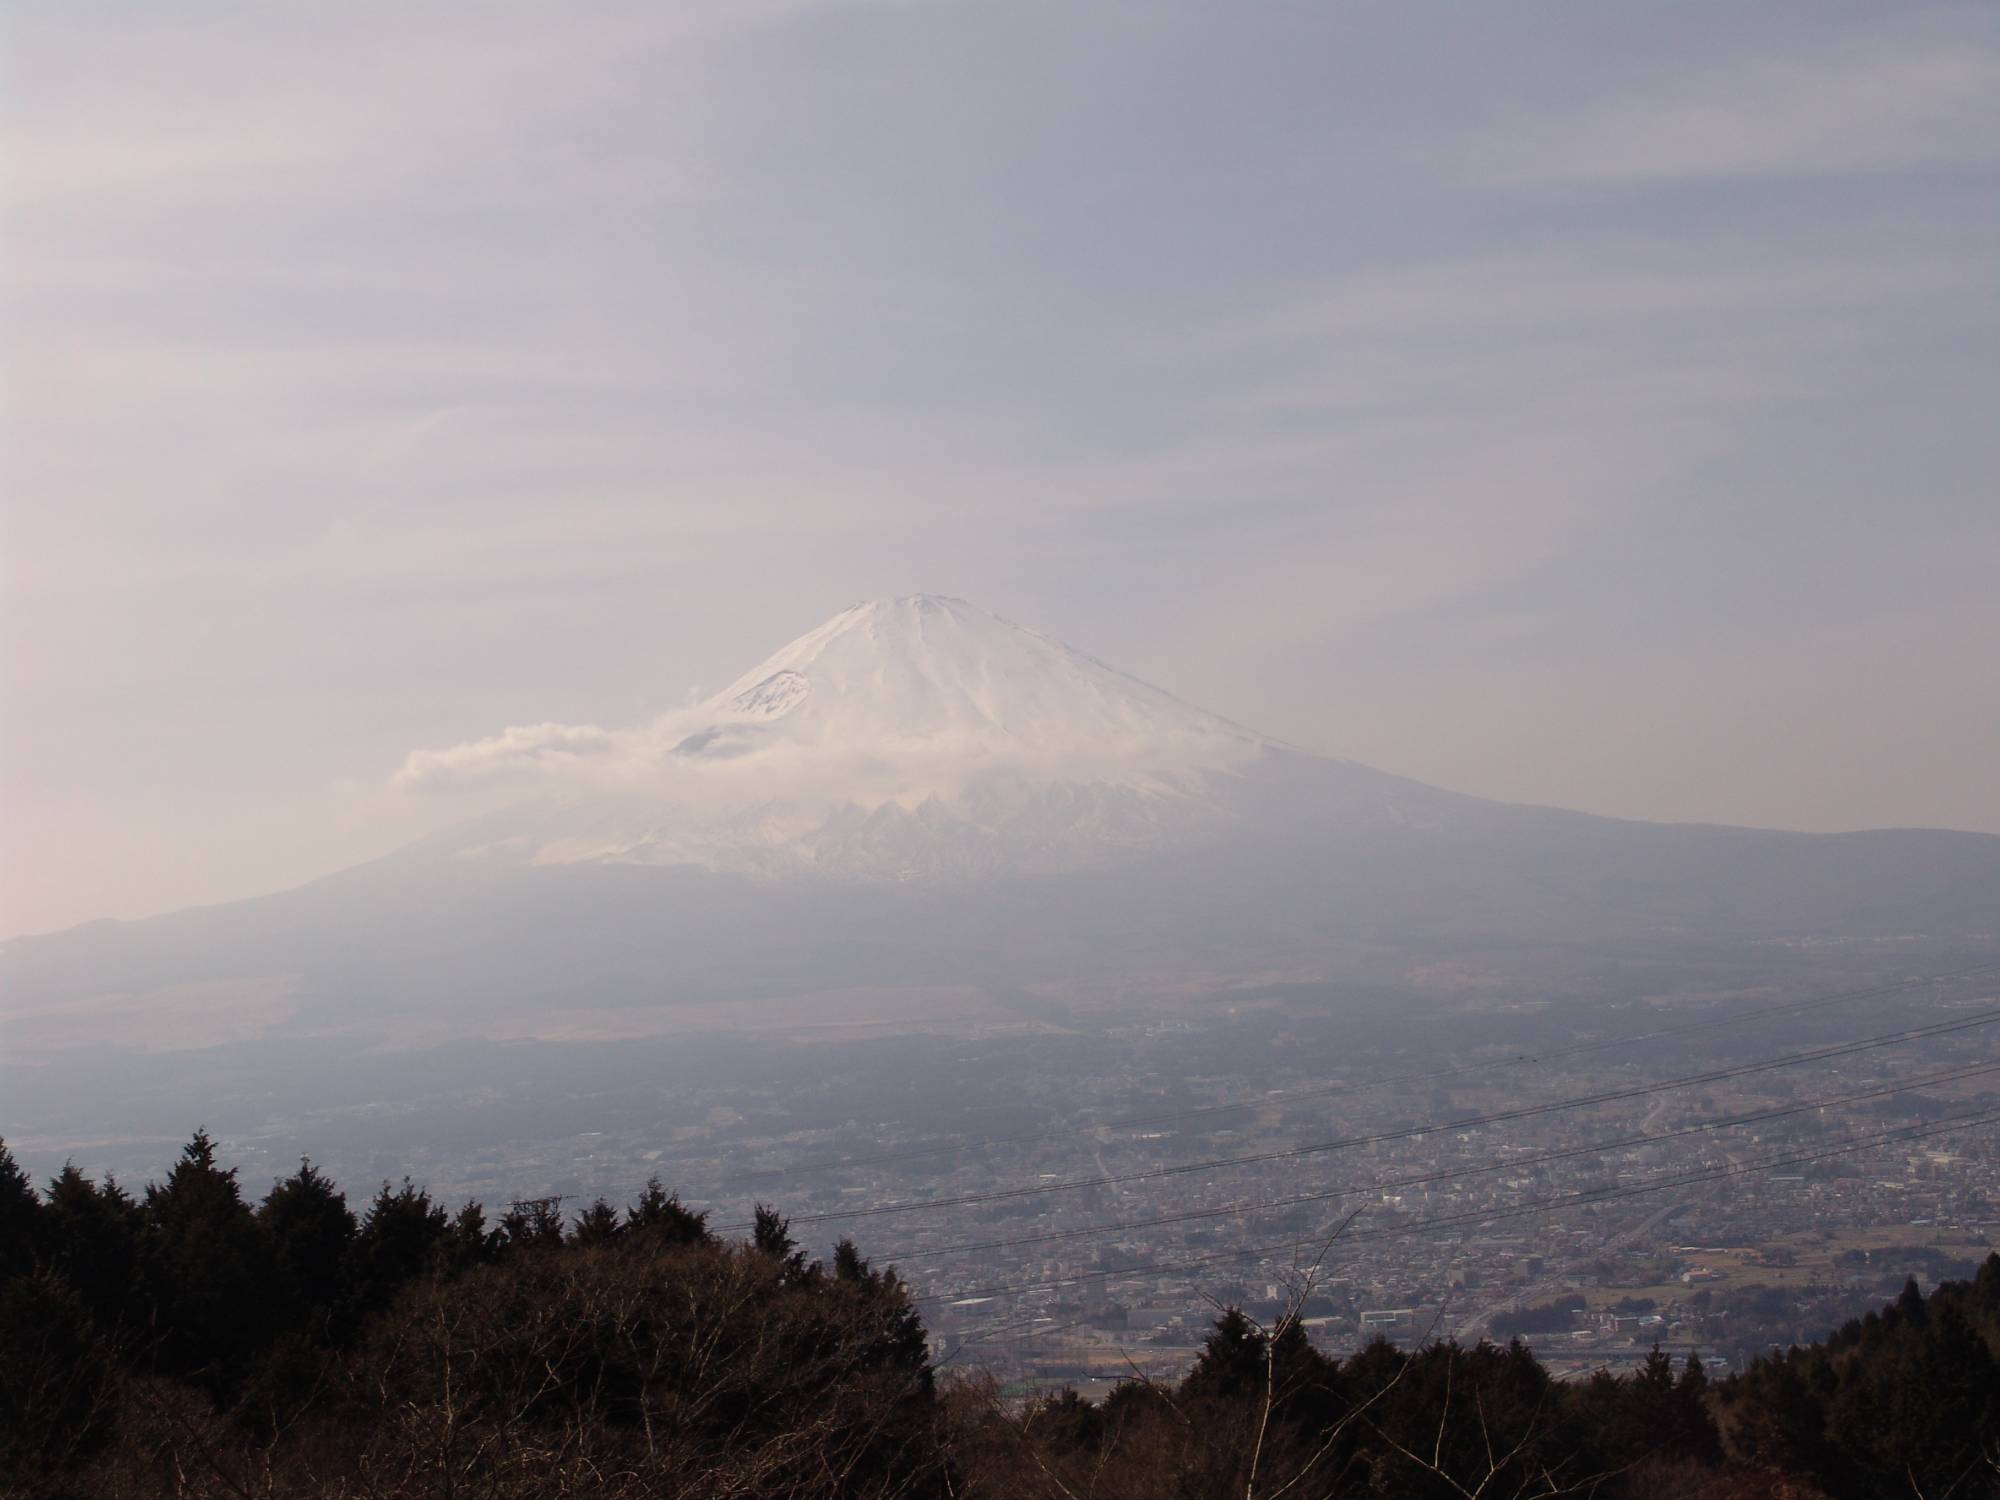 Discover the beauty of Mt. Fuji and Hakone, Japan |PassPorter.com